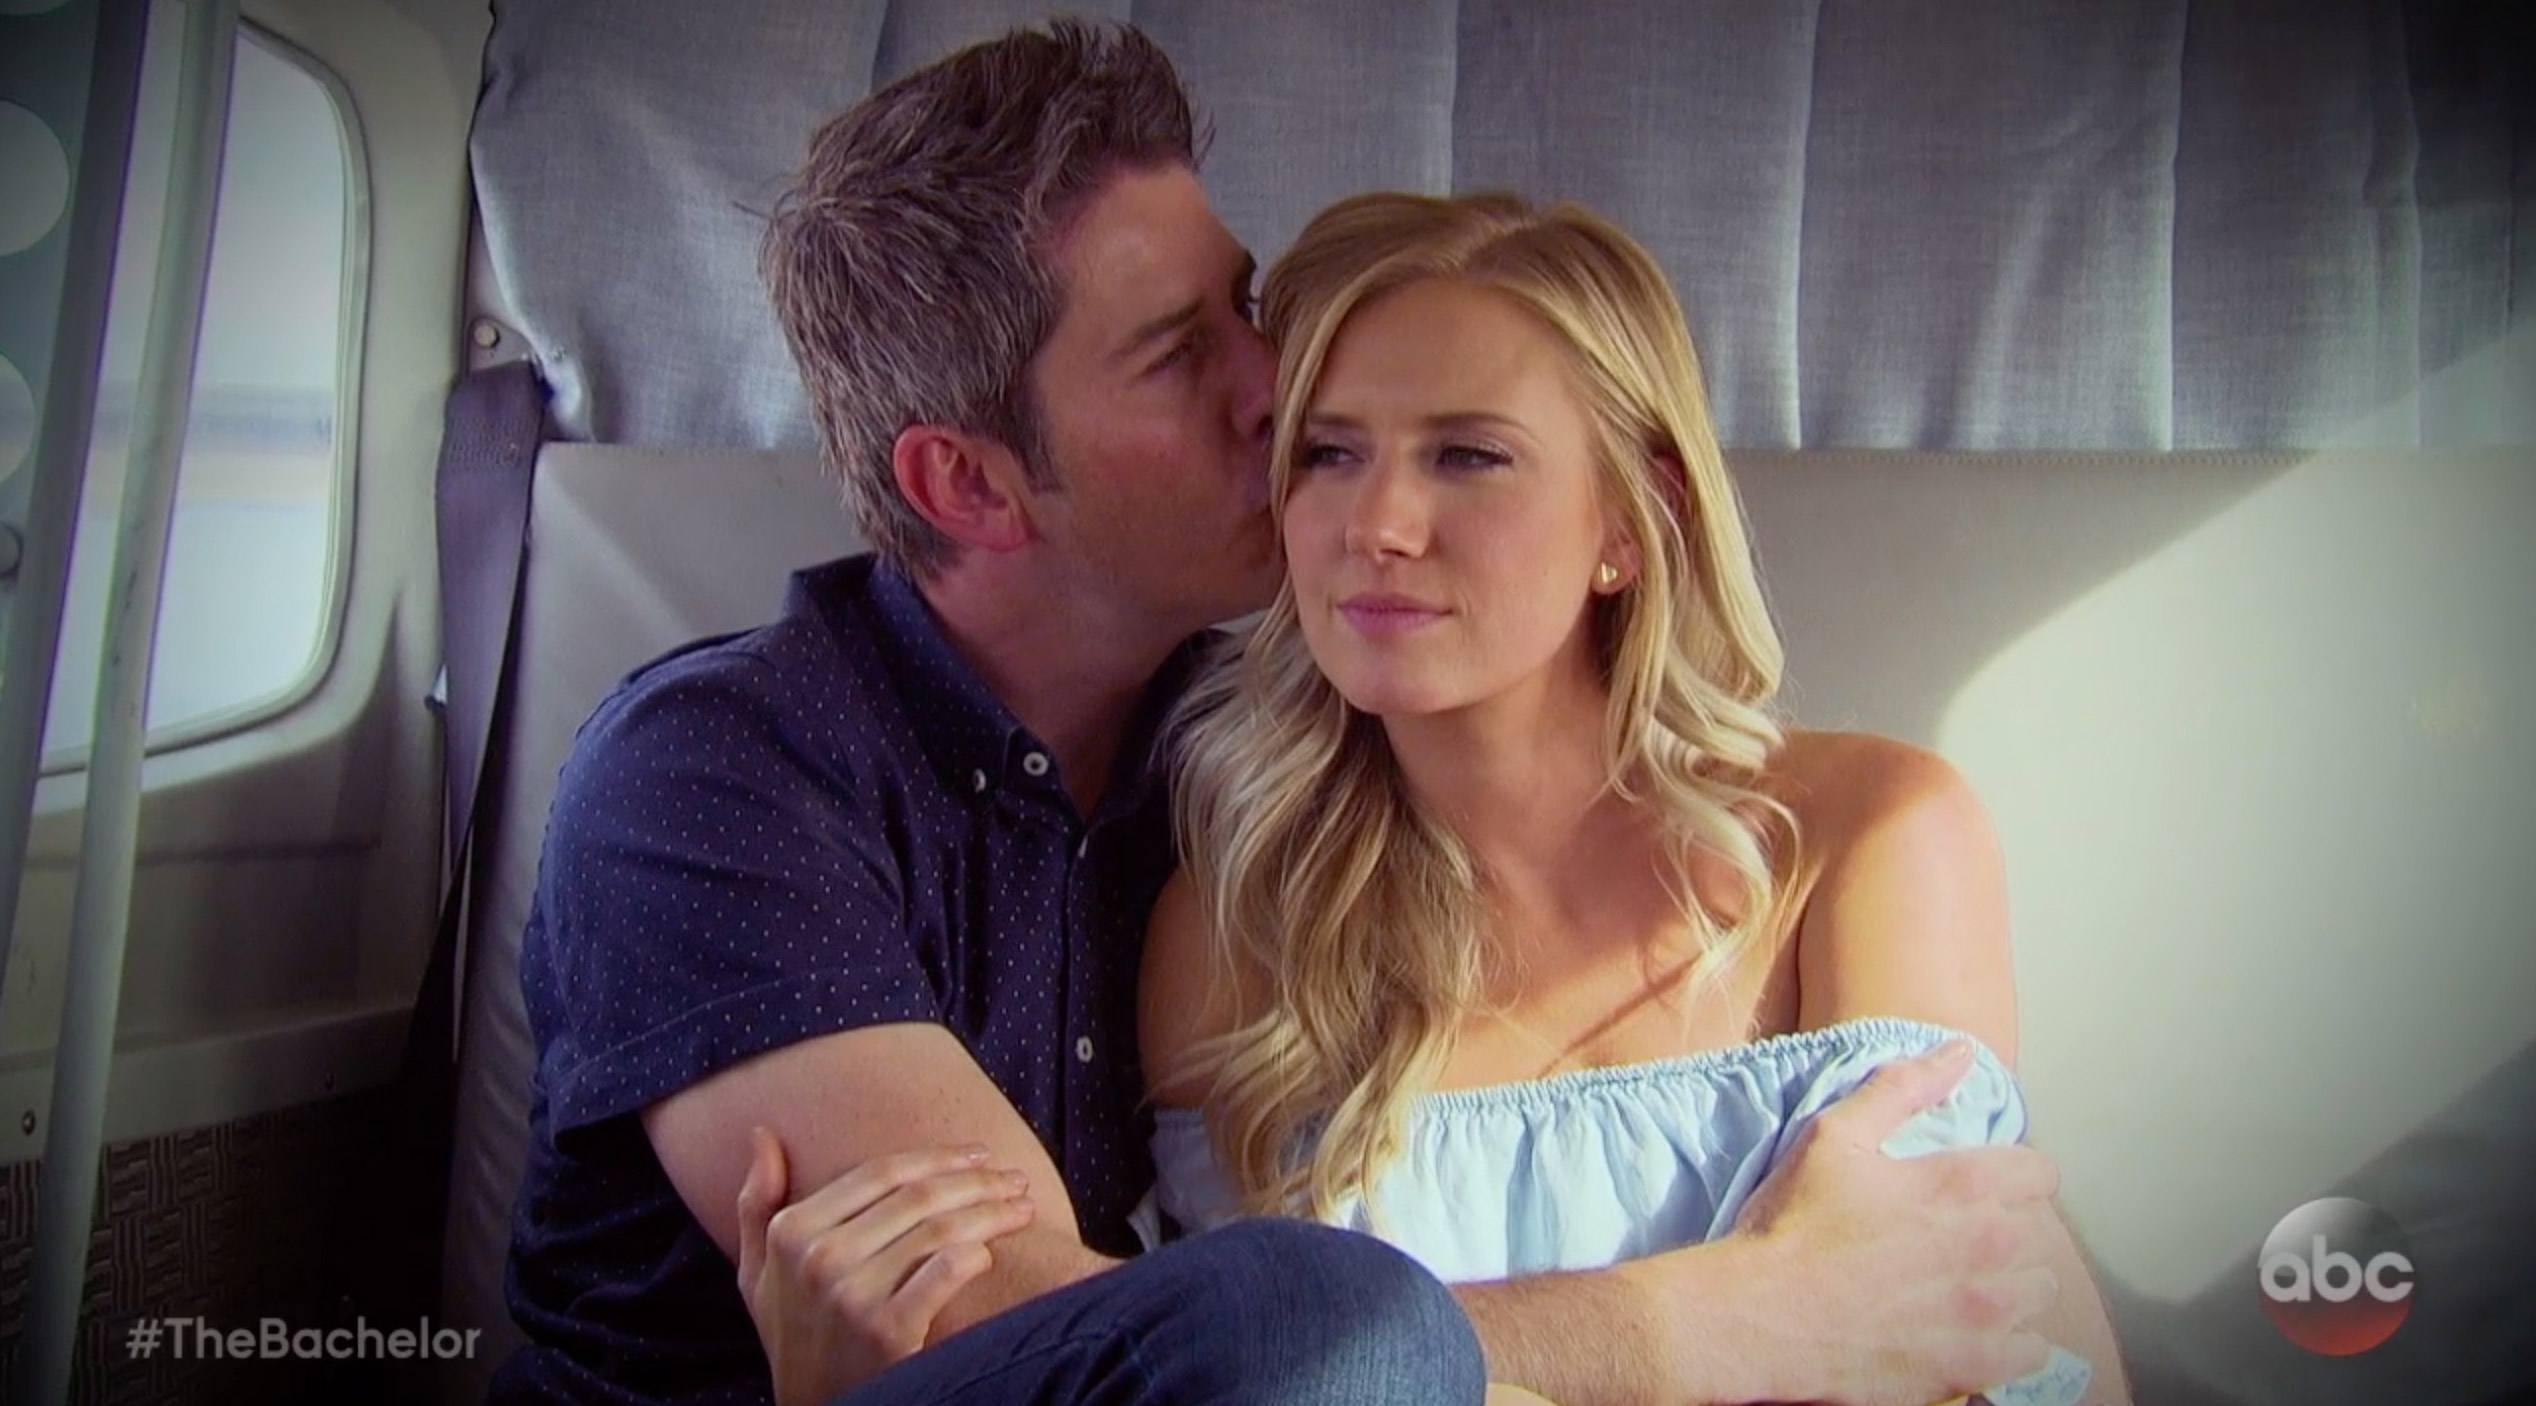 Arie and Lauren hug